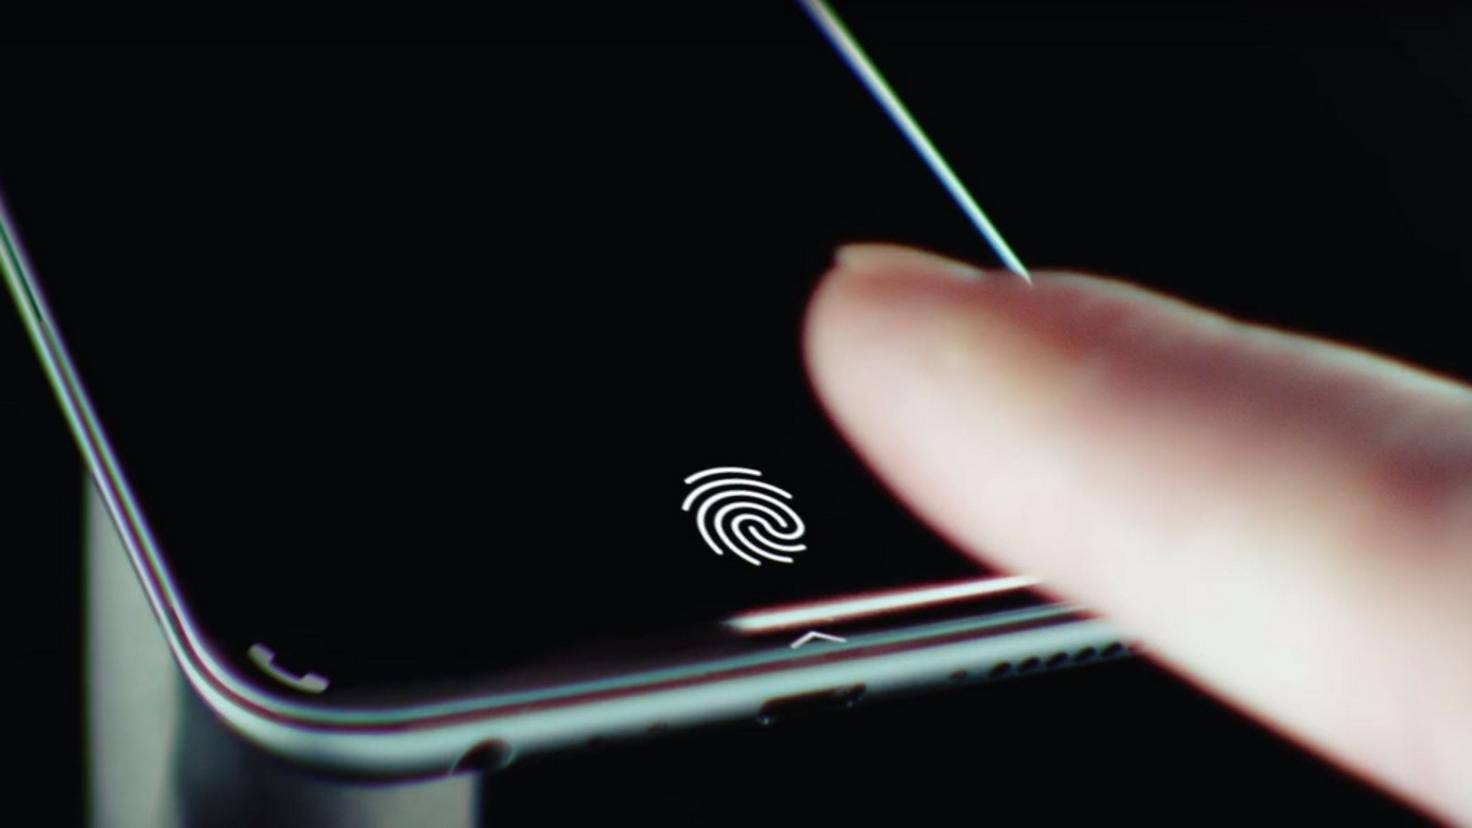 Fingerabdruckscanner-Display